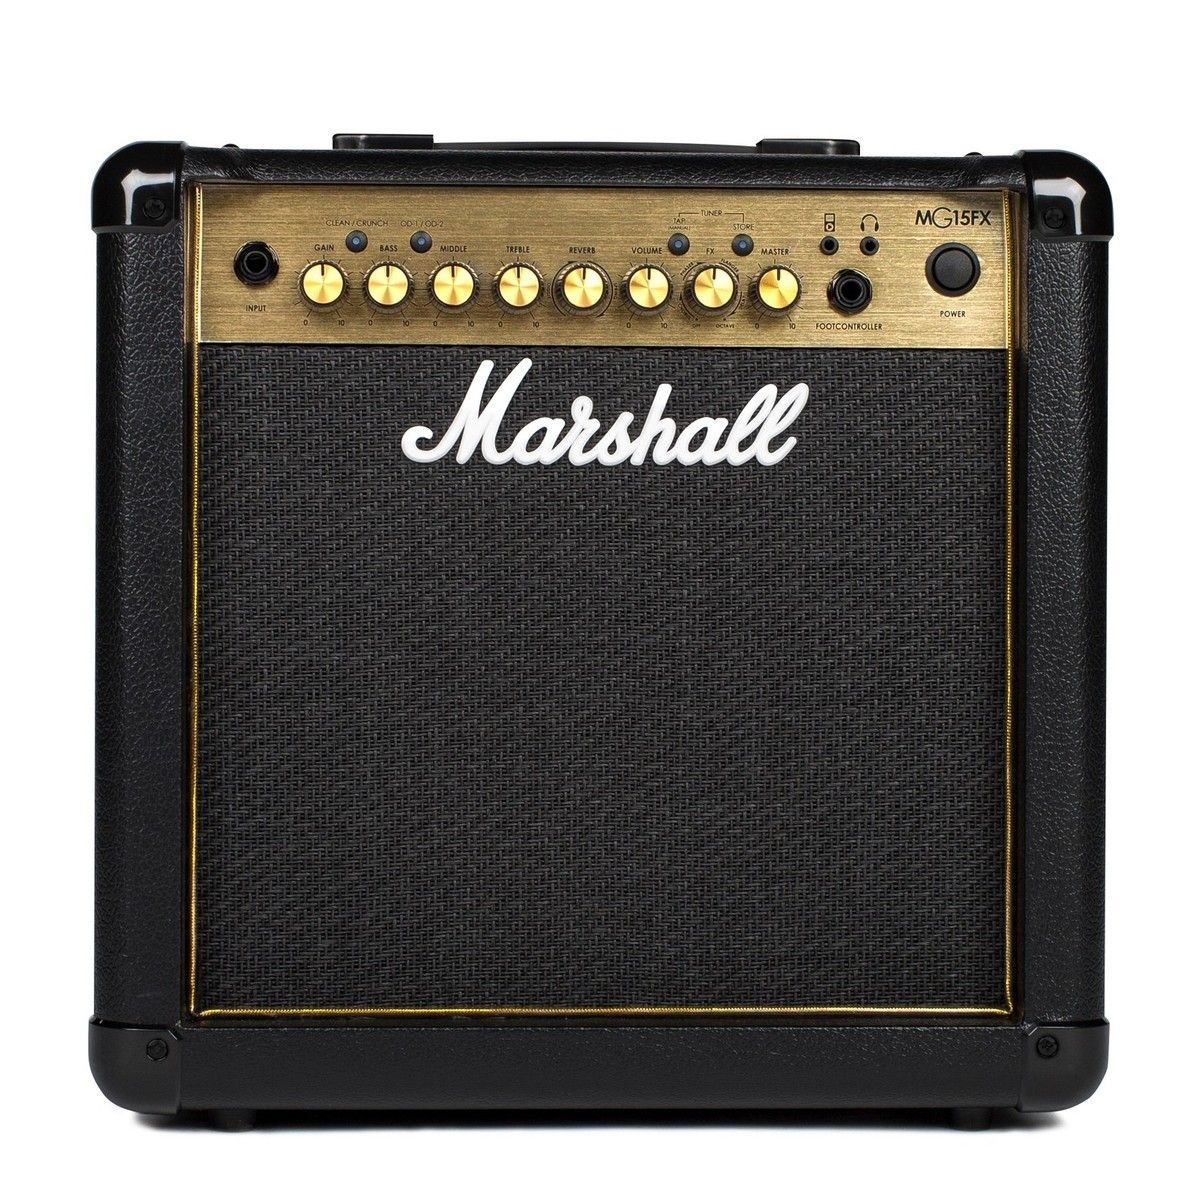 marshall mg15gfx 15 watt guitar amp combo black gold guitar mania. Black Bedroom Furniture Sets. Home Design Ideas